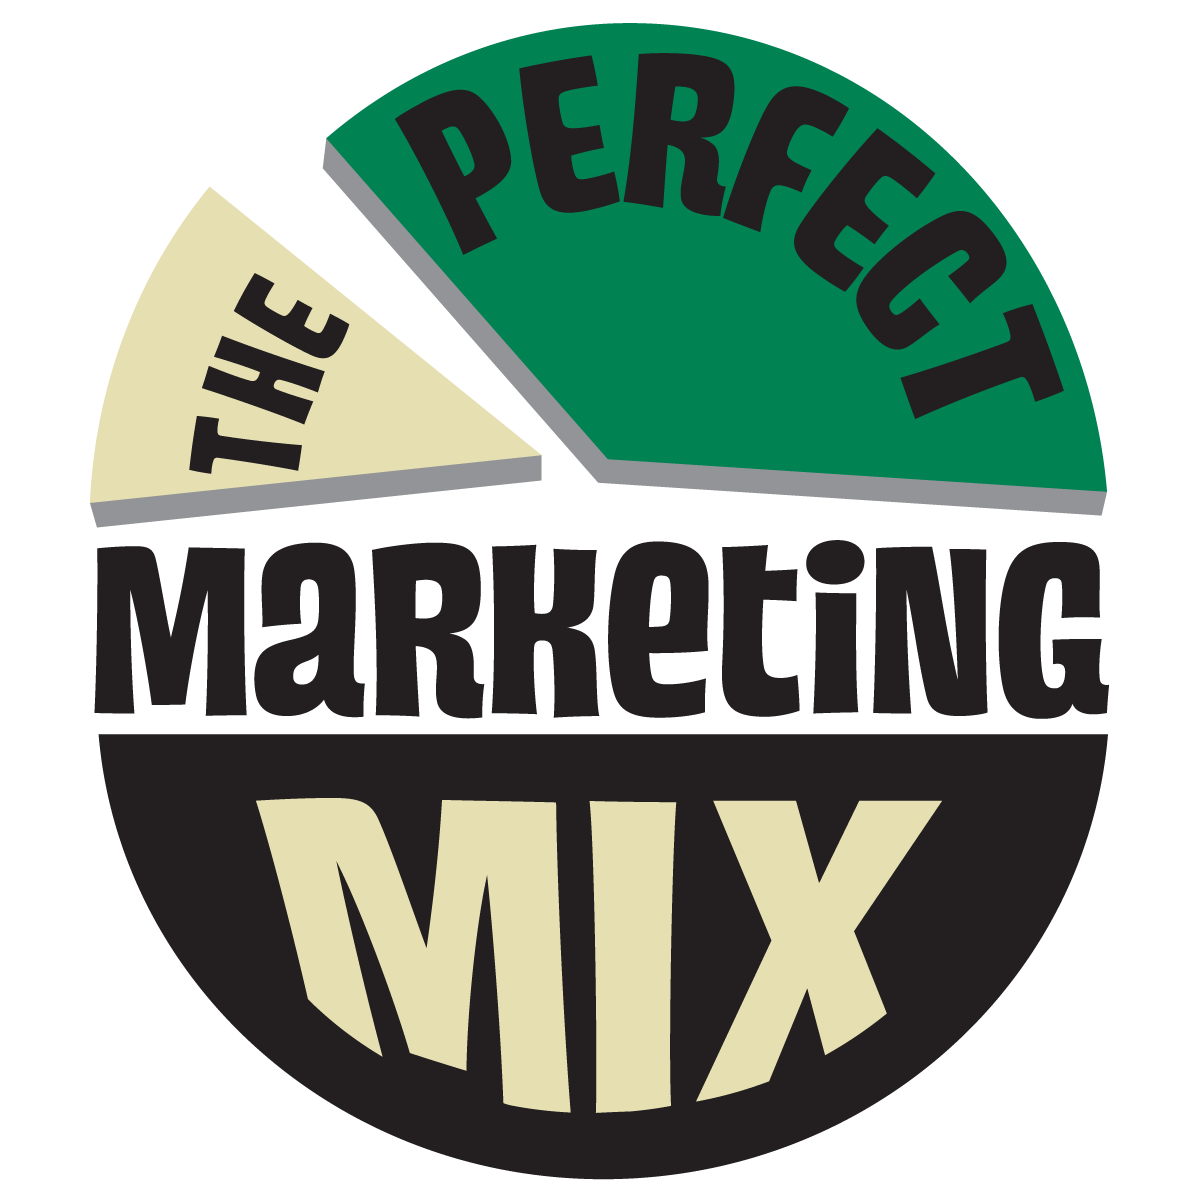 the perfect marketing mix 1200px.png